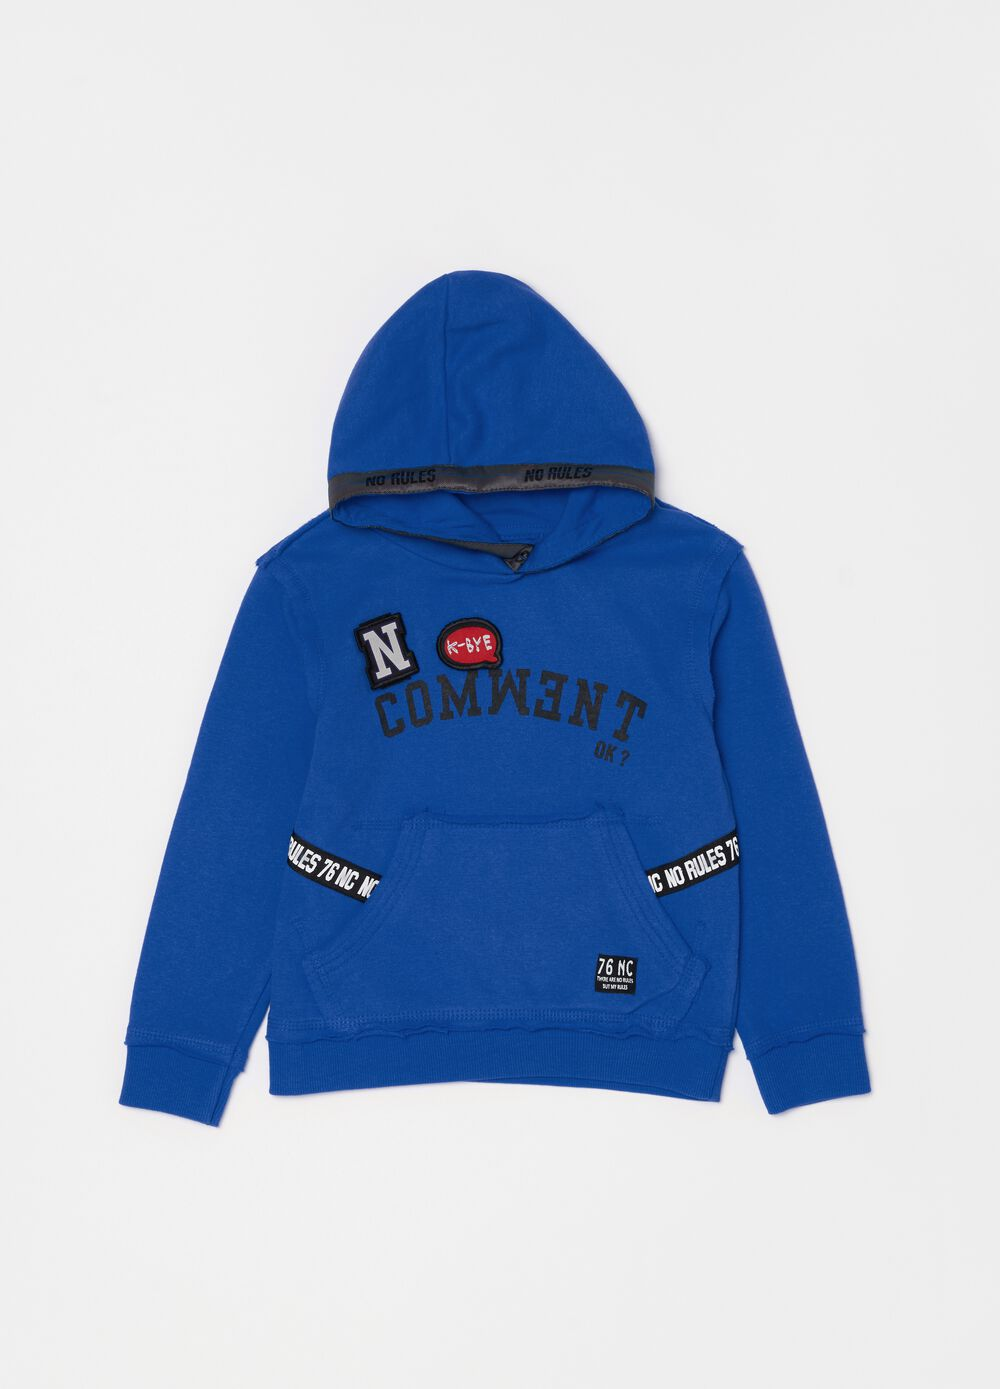 Sweatshirt with hood and lettering patches